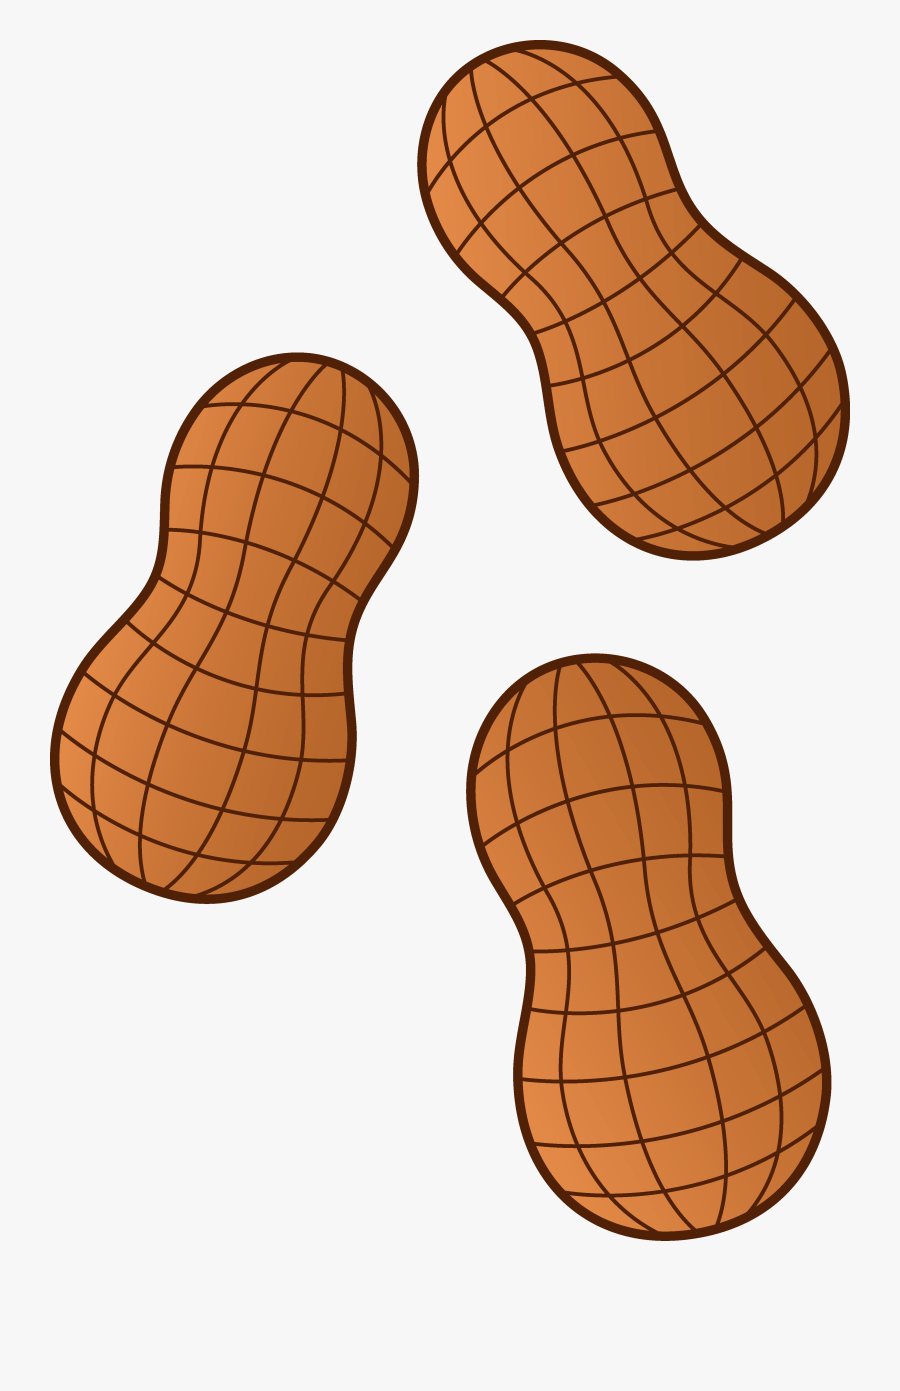 Peanut Clipart Free : peanut, clipart, Peanut, Clipart, Transparent, ClipartKey